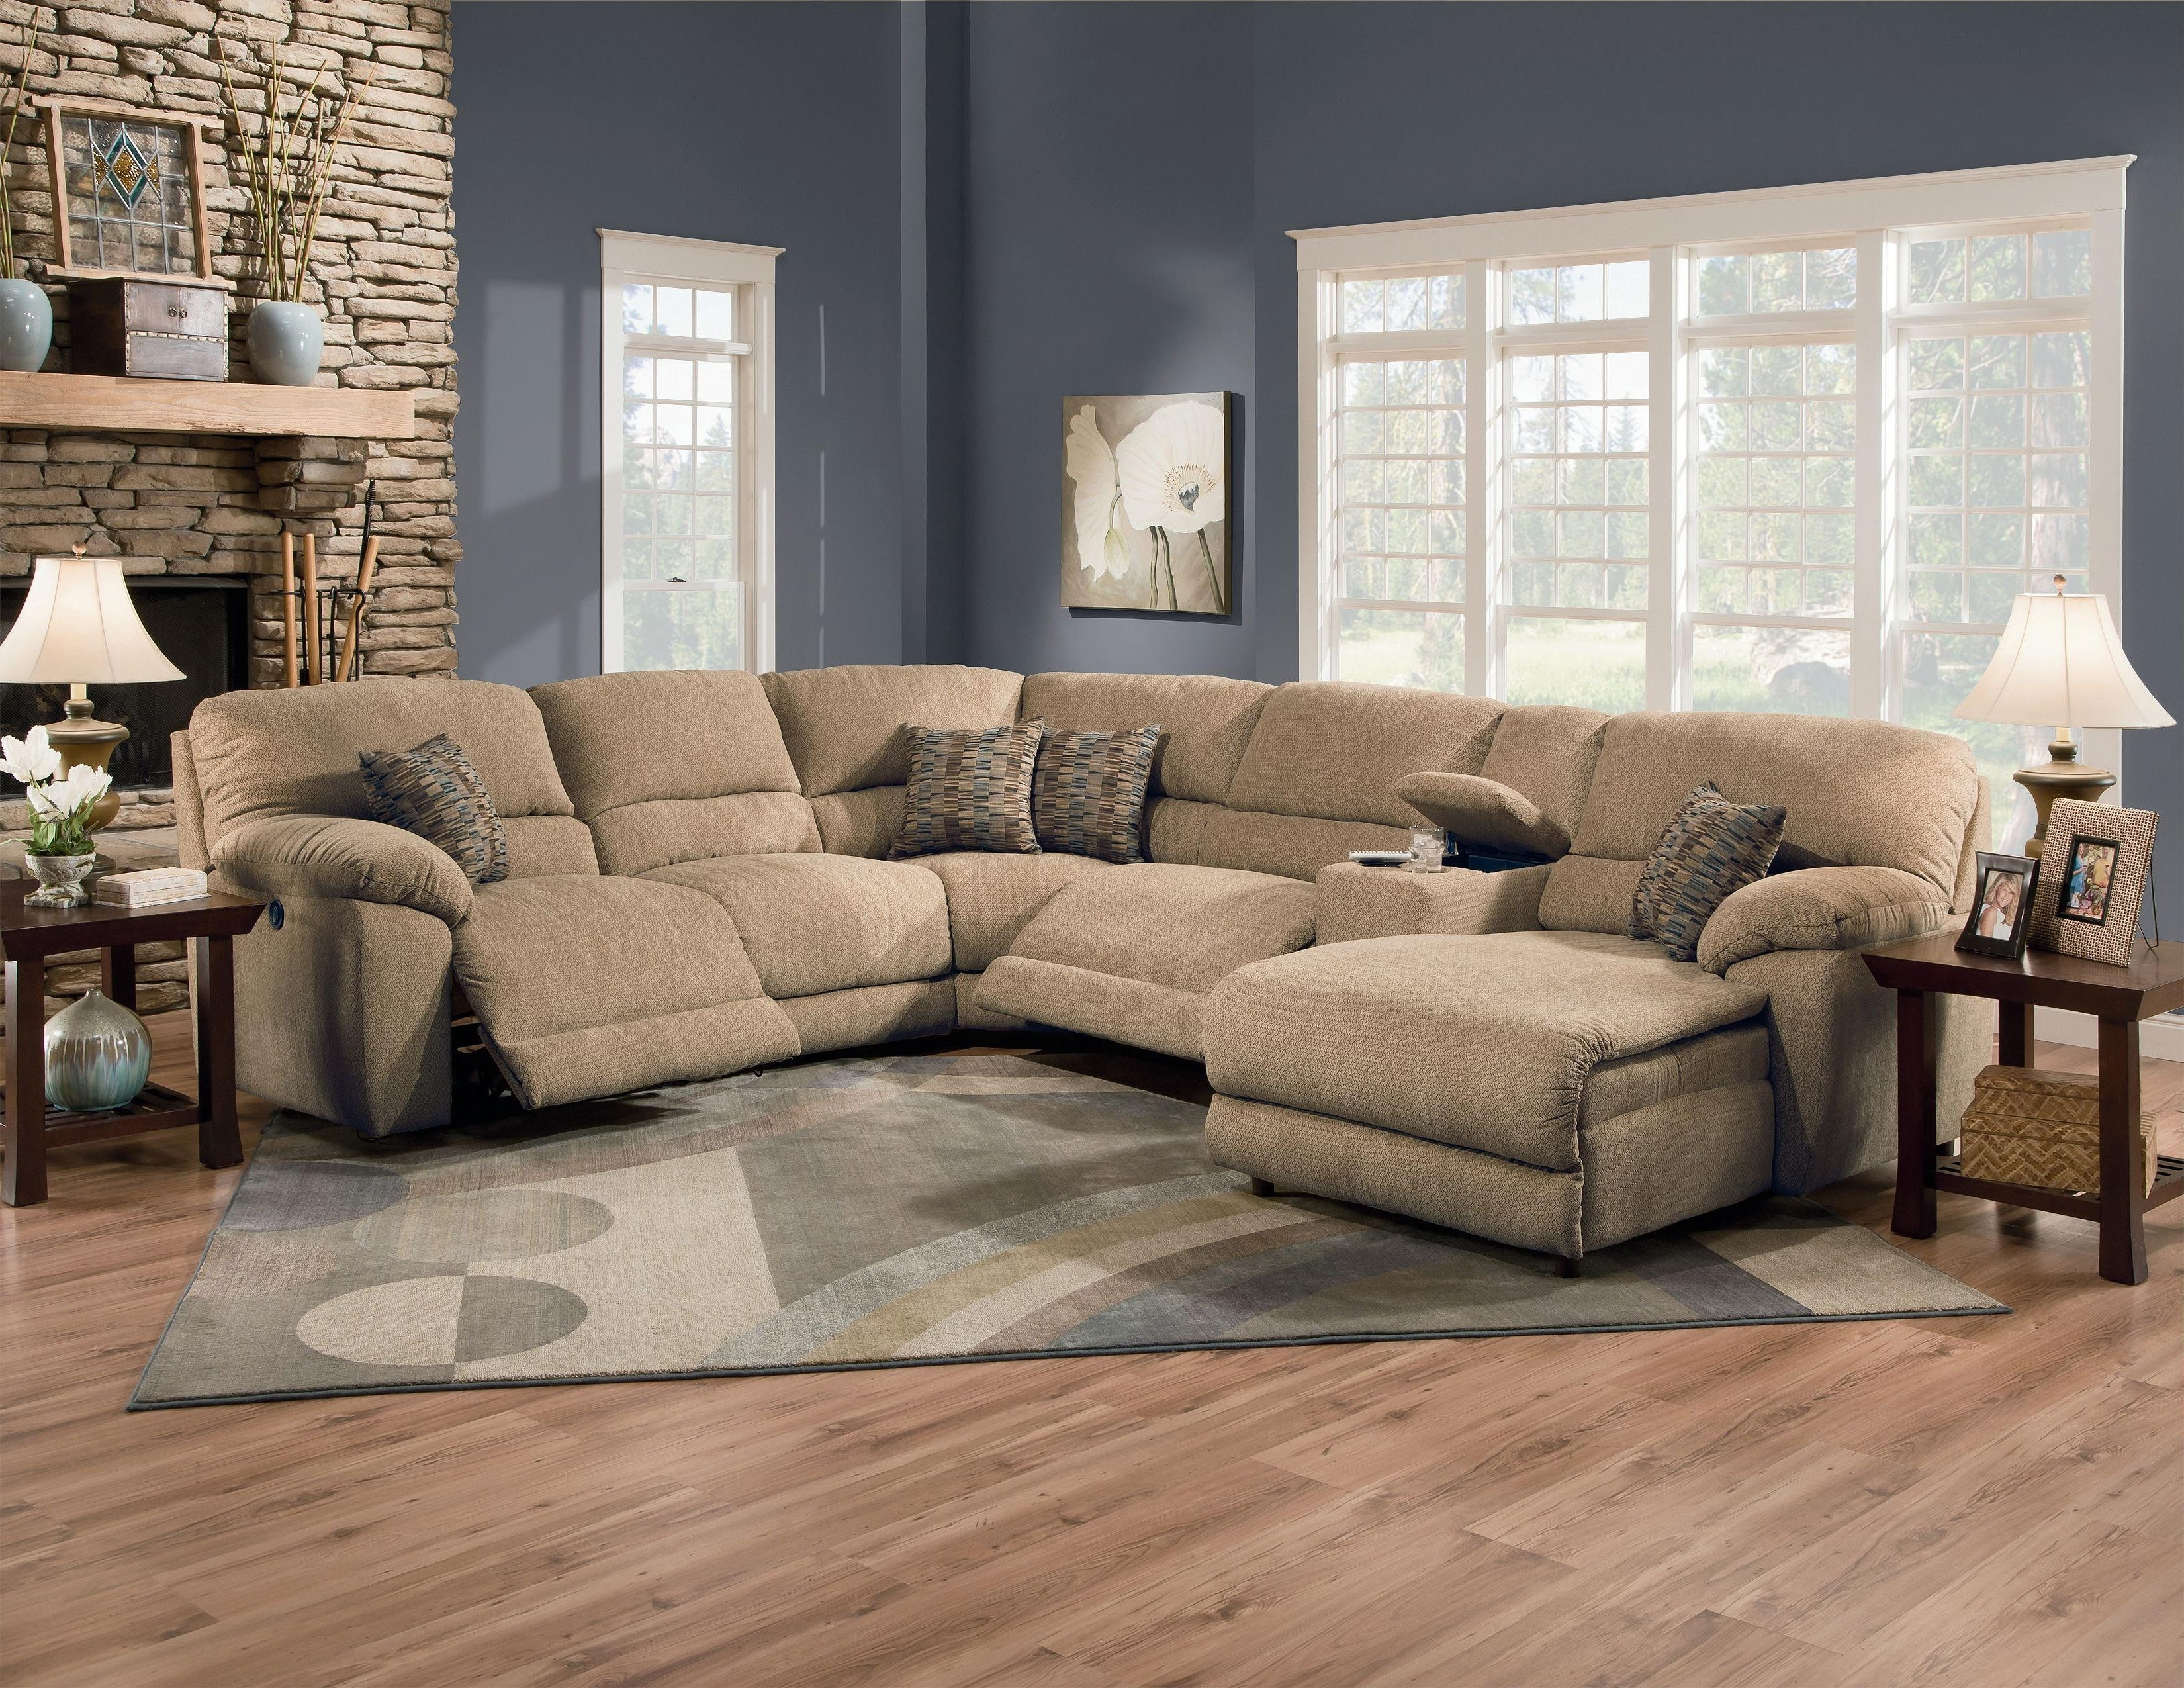 Recent Lane Furniture: Rivers Collection Featuring Power Reclining Within Virginia Sectional Sofas (View 10 of 15)